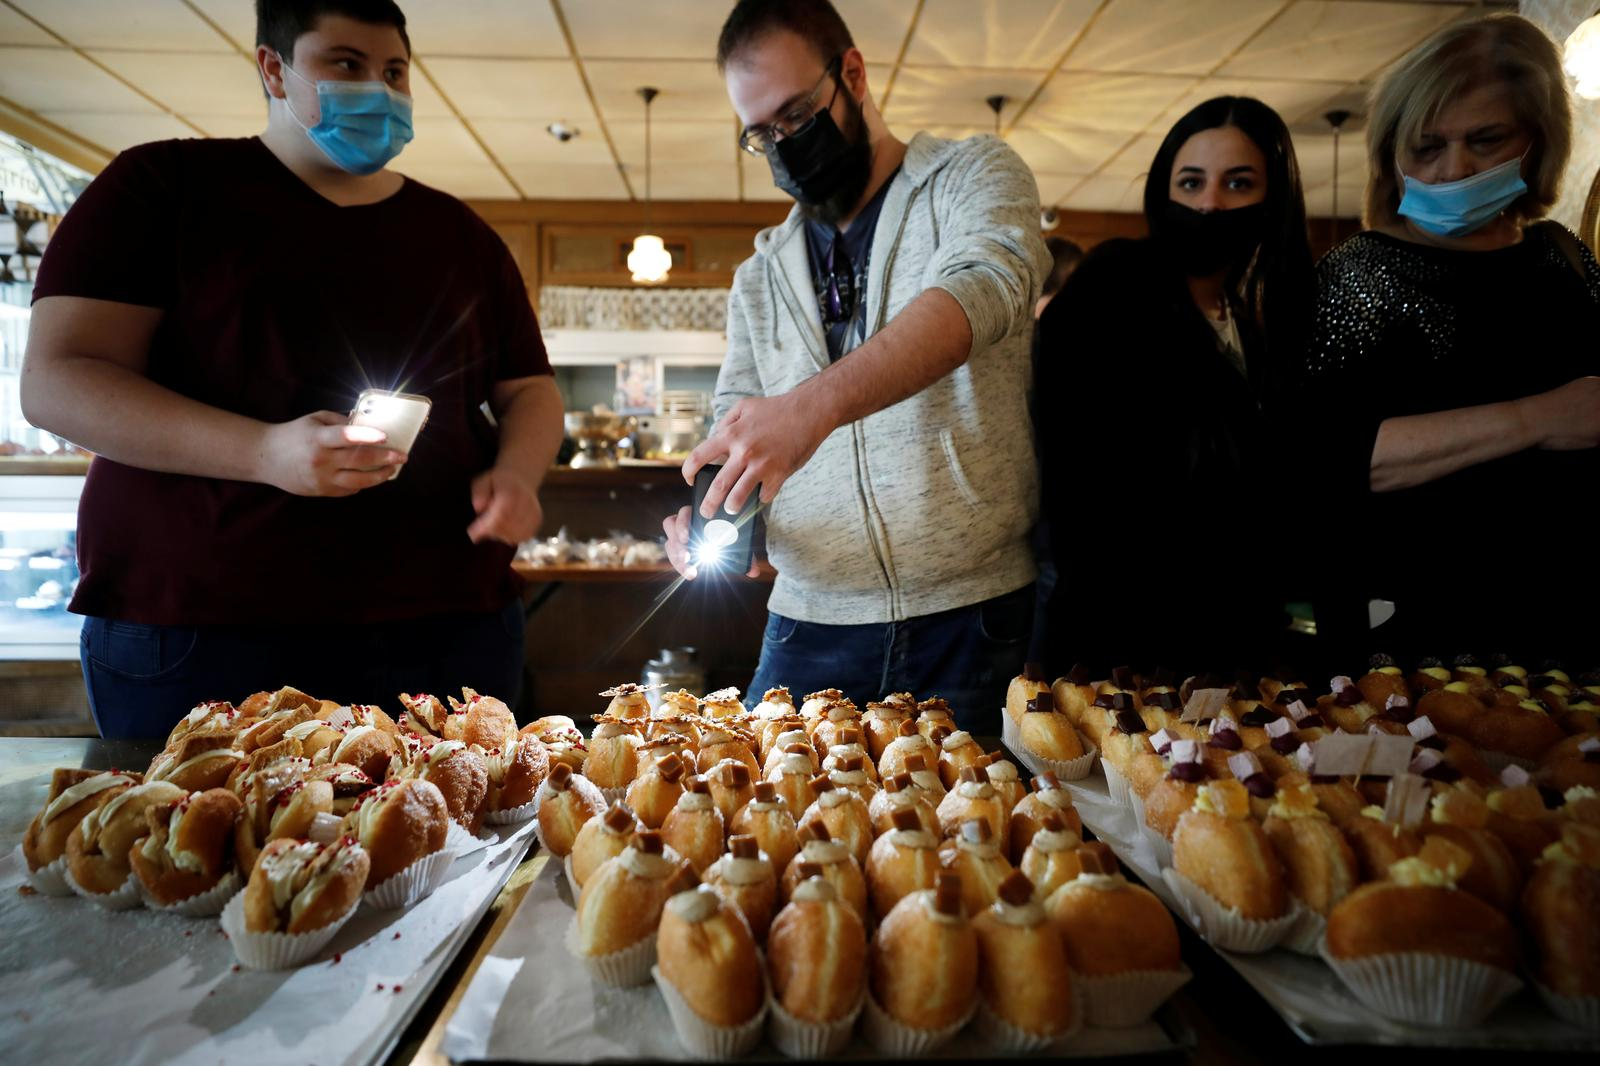 Customers take photos of 'Abu Dhabi' doughnuts, a date-flavoured confectionery inspired by Israel's new relations with the United Arab Emirates, as doughnuts are a popular fare in Israel during the current holiday of Hanukkah, in which Jews traditionally eat deep-fried delicacies, at a patisserie in Jerusalem December 13, 2020. Photo: Reuters